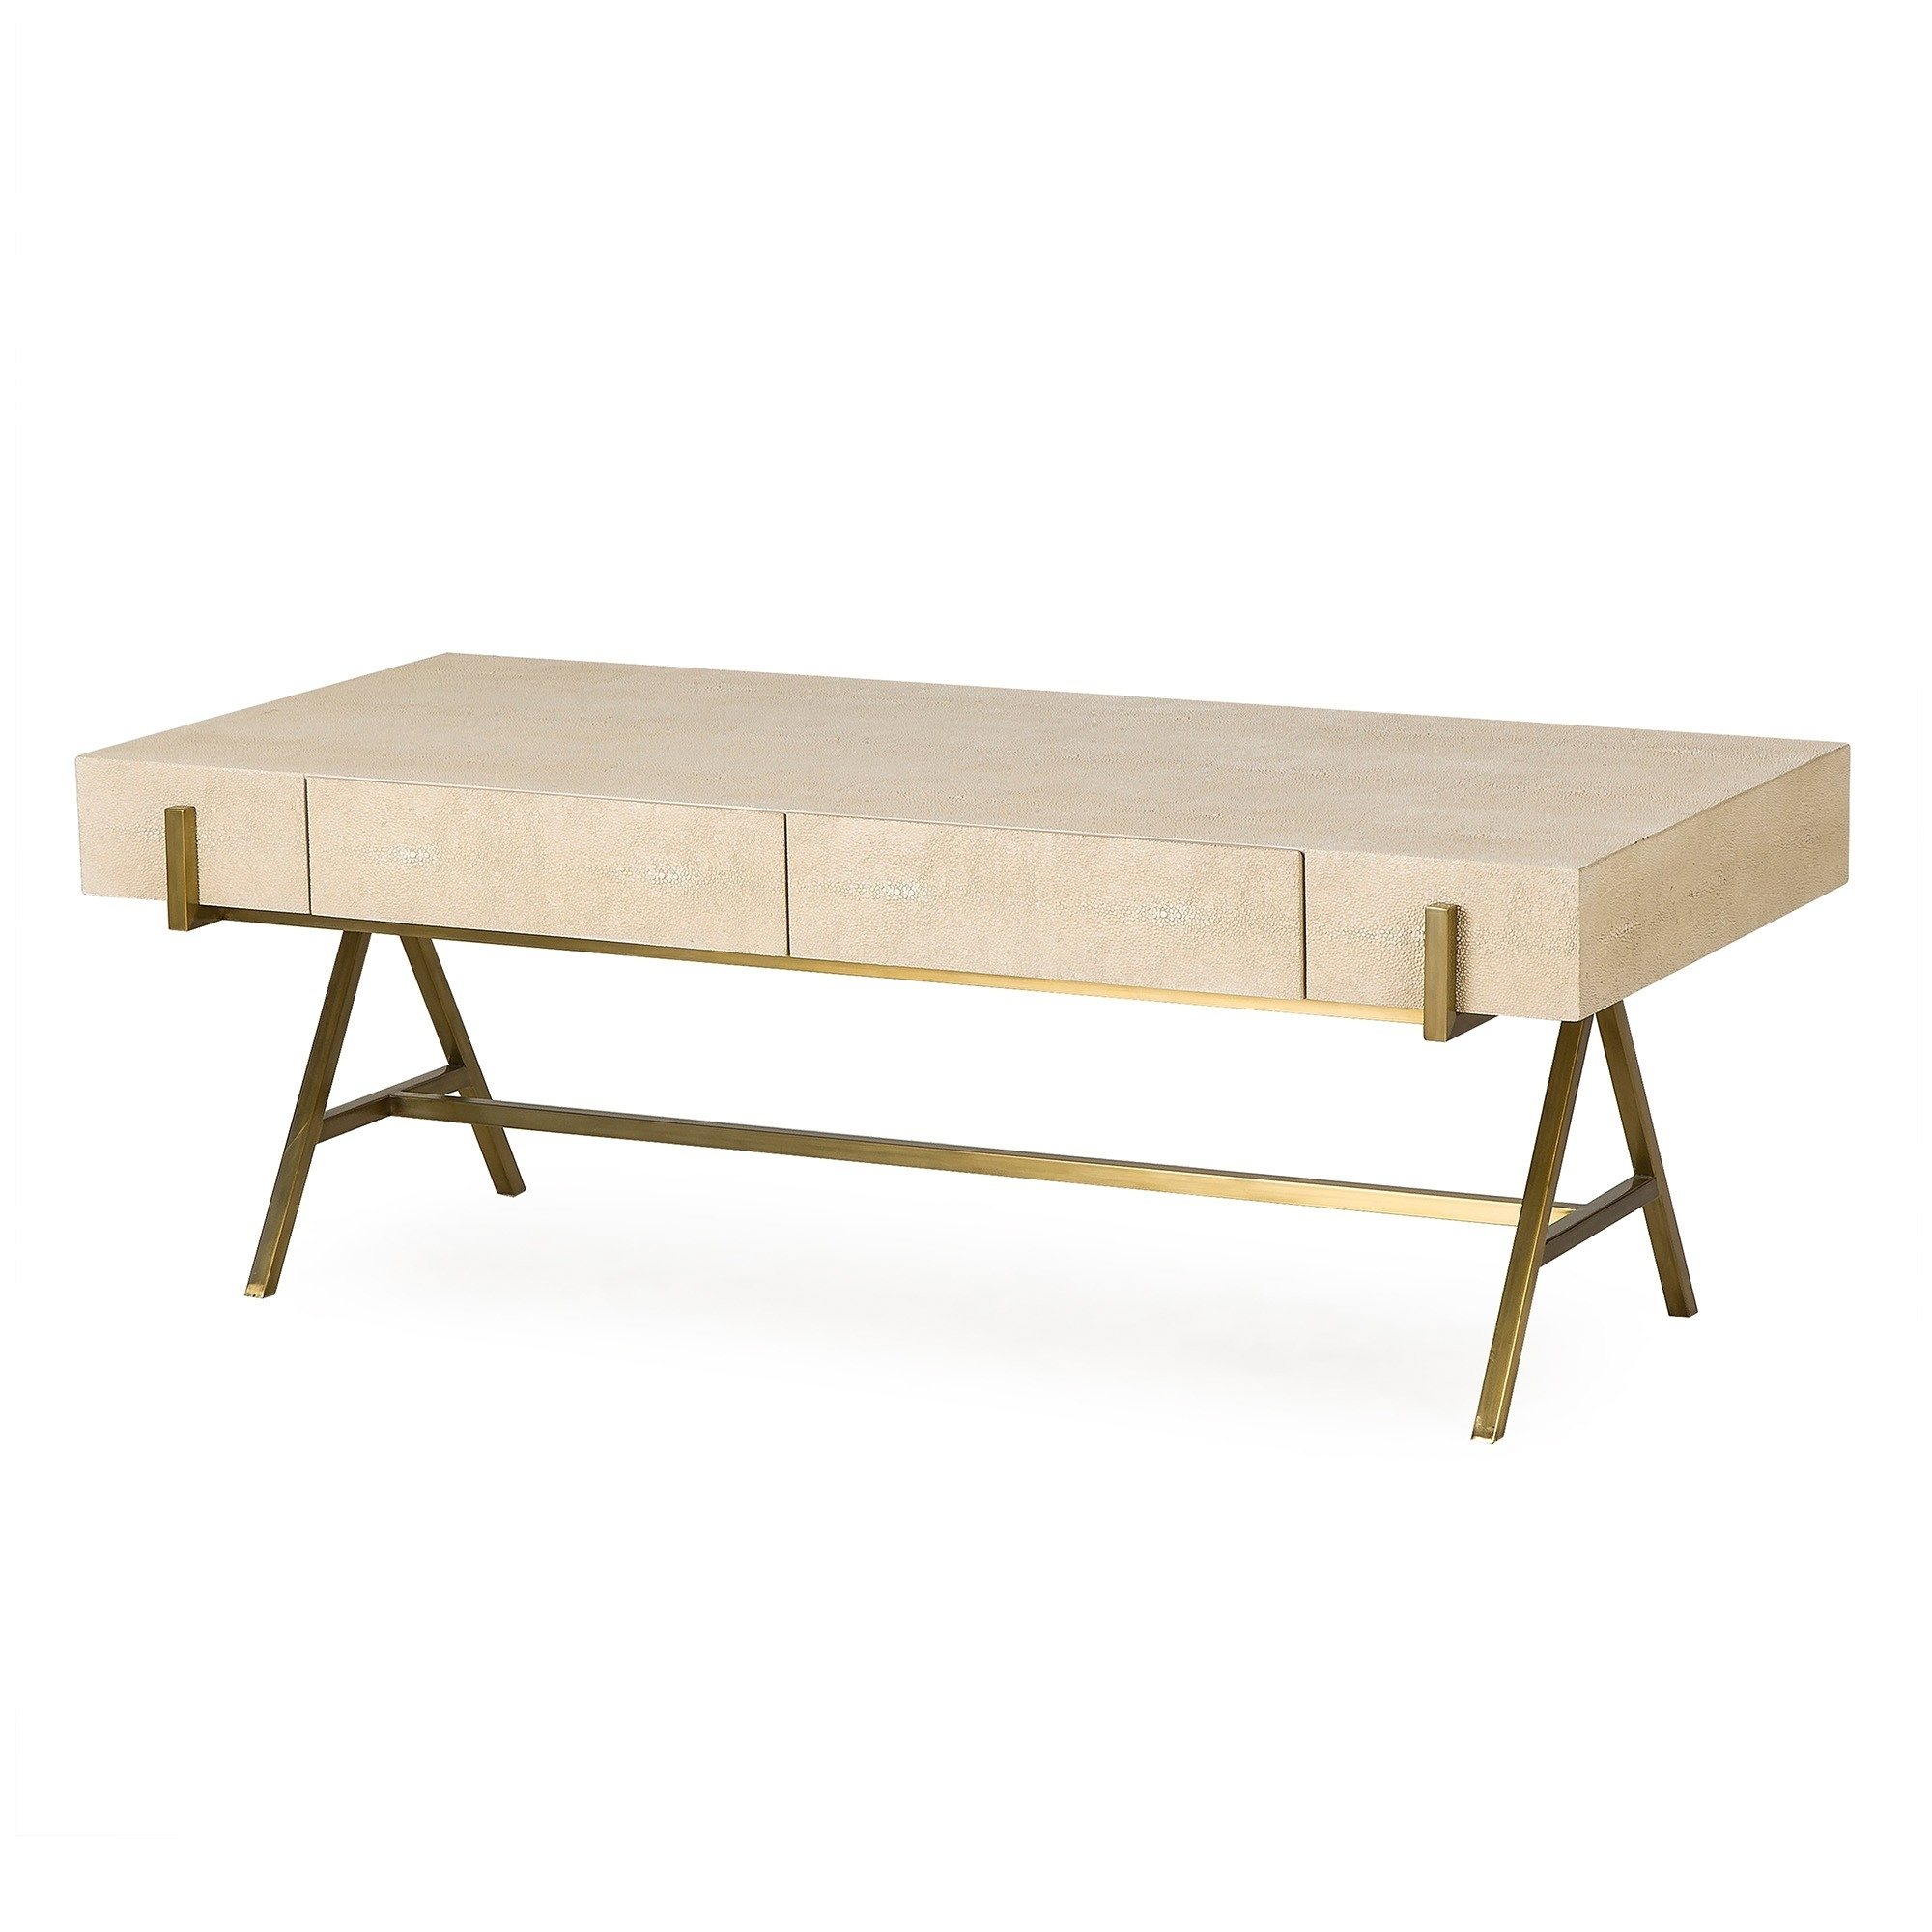 Delilah Coffee Table | Curated Kravet regarding Joni Brass and Wood Coffee Tables (Image 13 of 30)